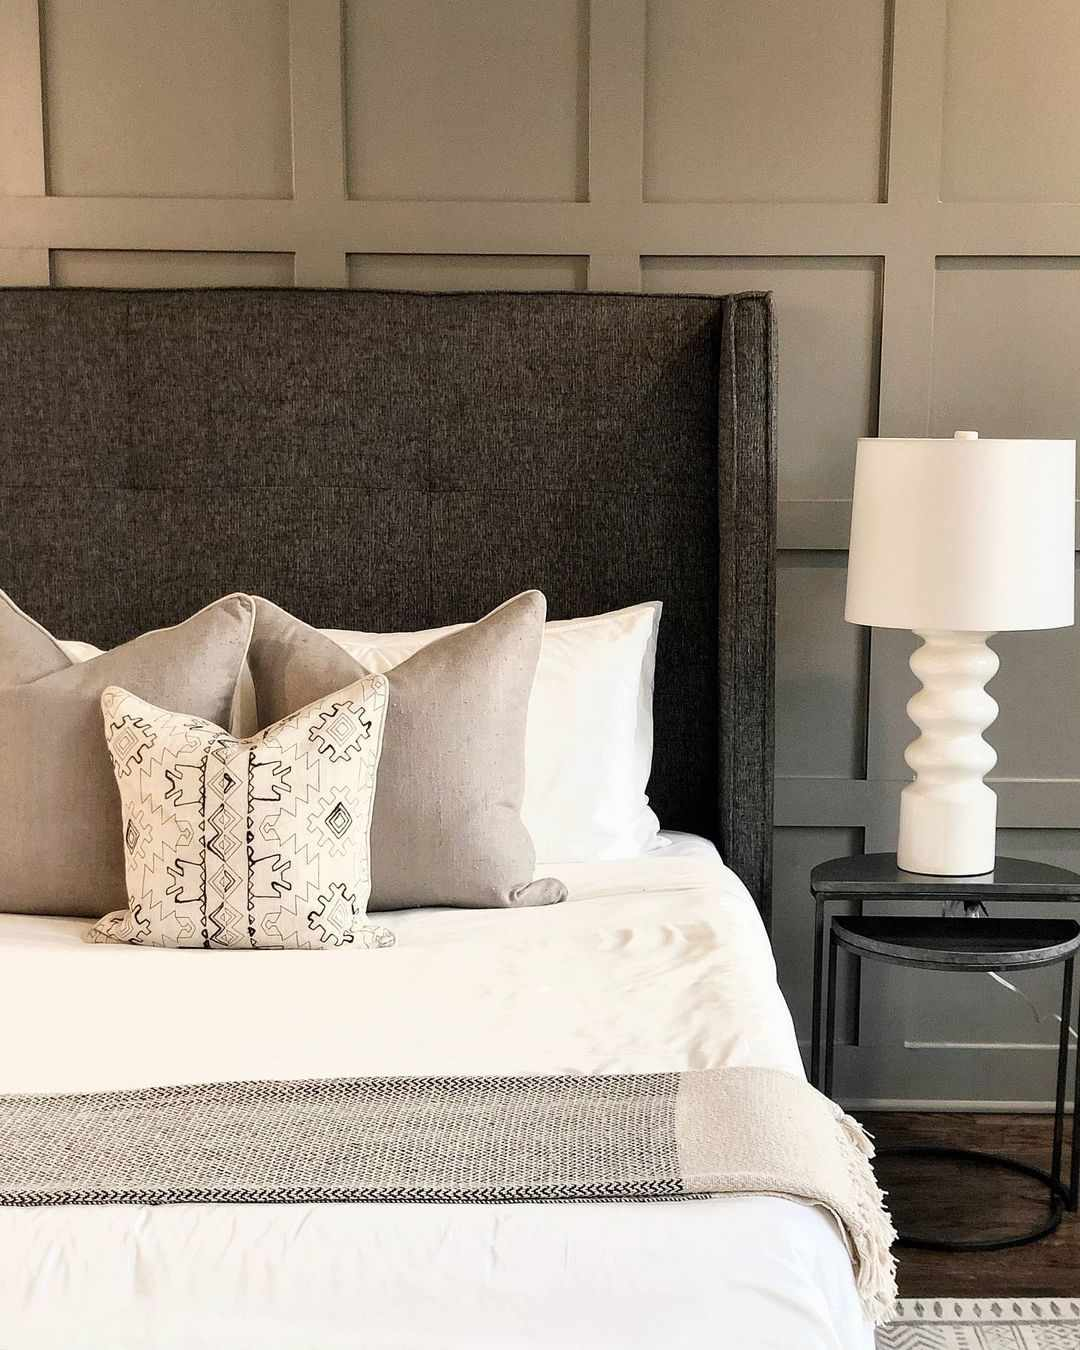 Bedroom with gray textiles